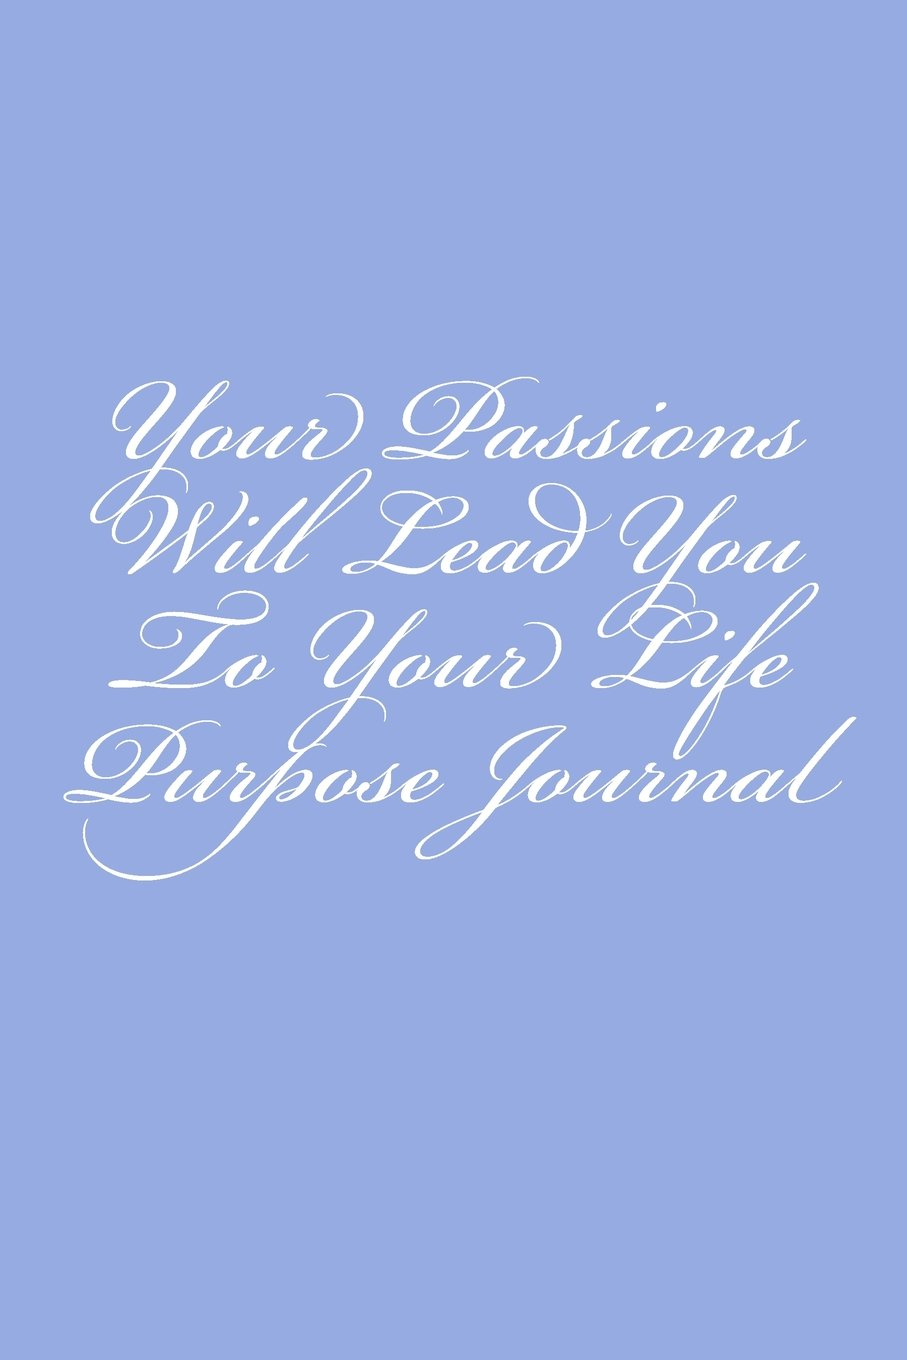 Read Online Your Passions Will Lead You To Your Life Purpose Journal ebook